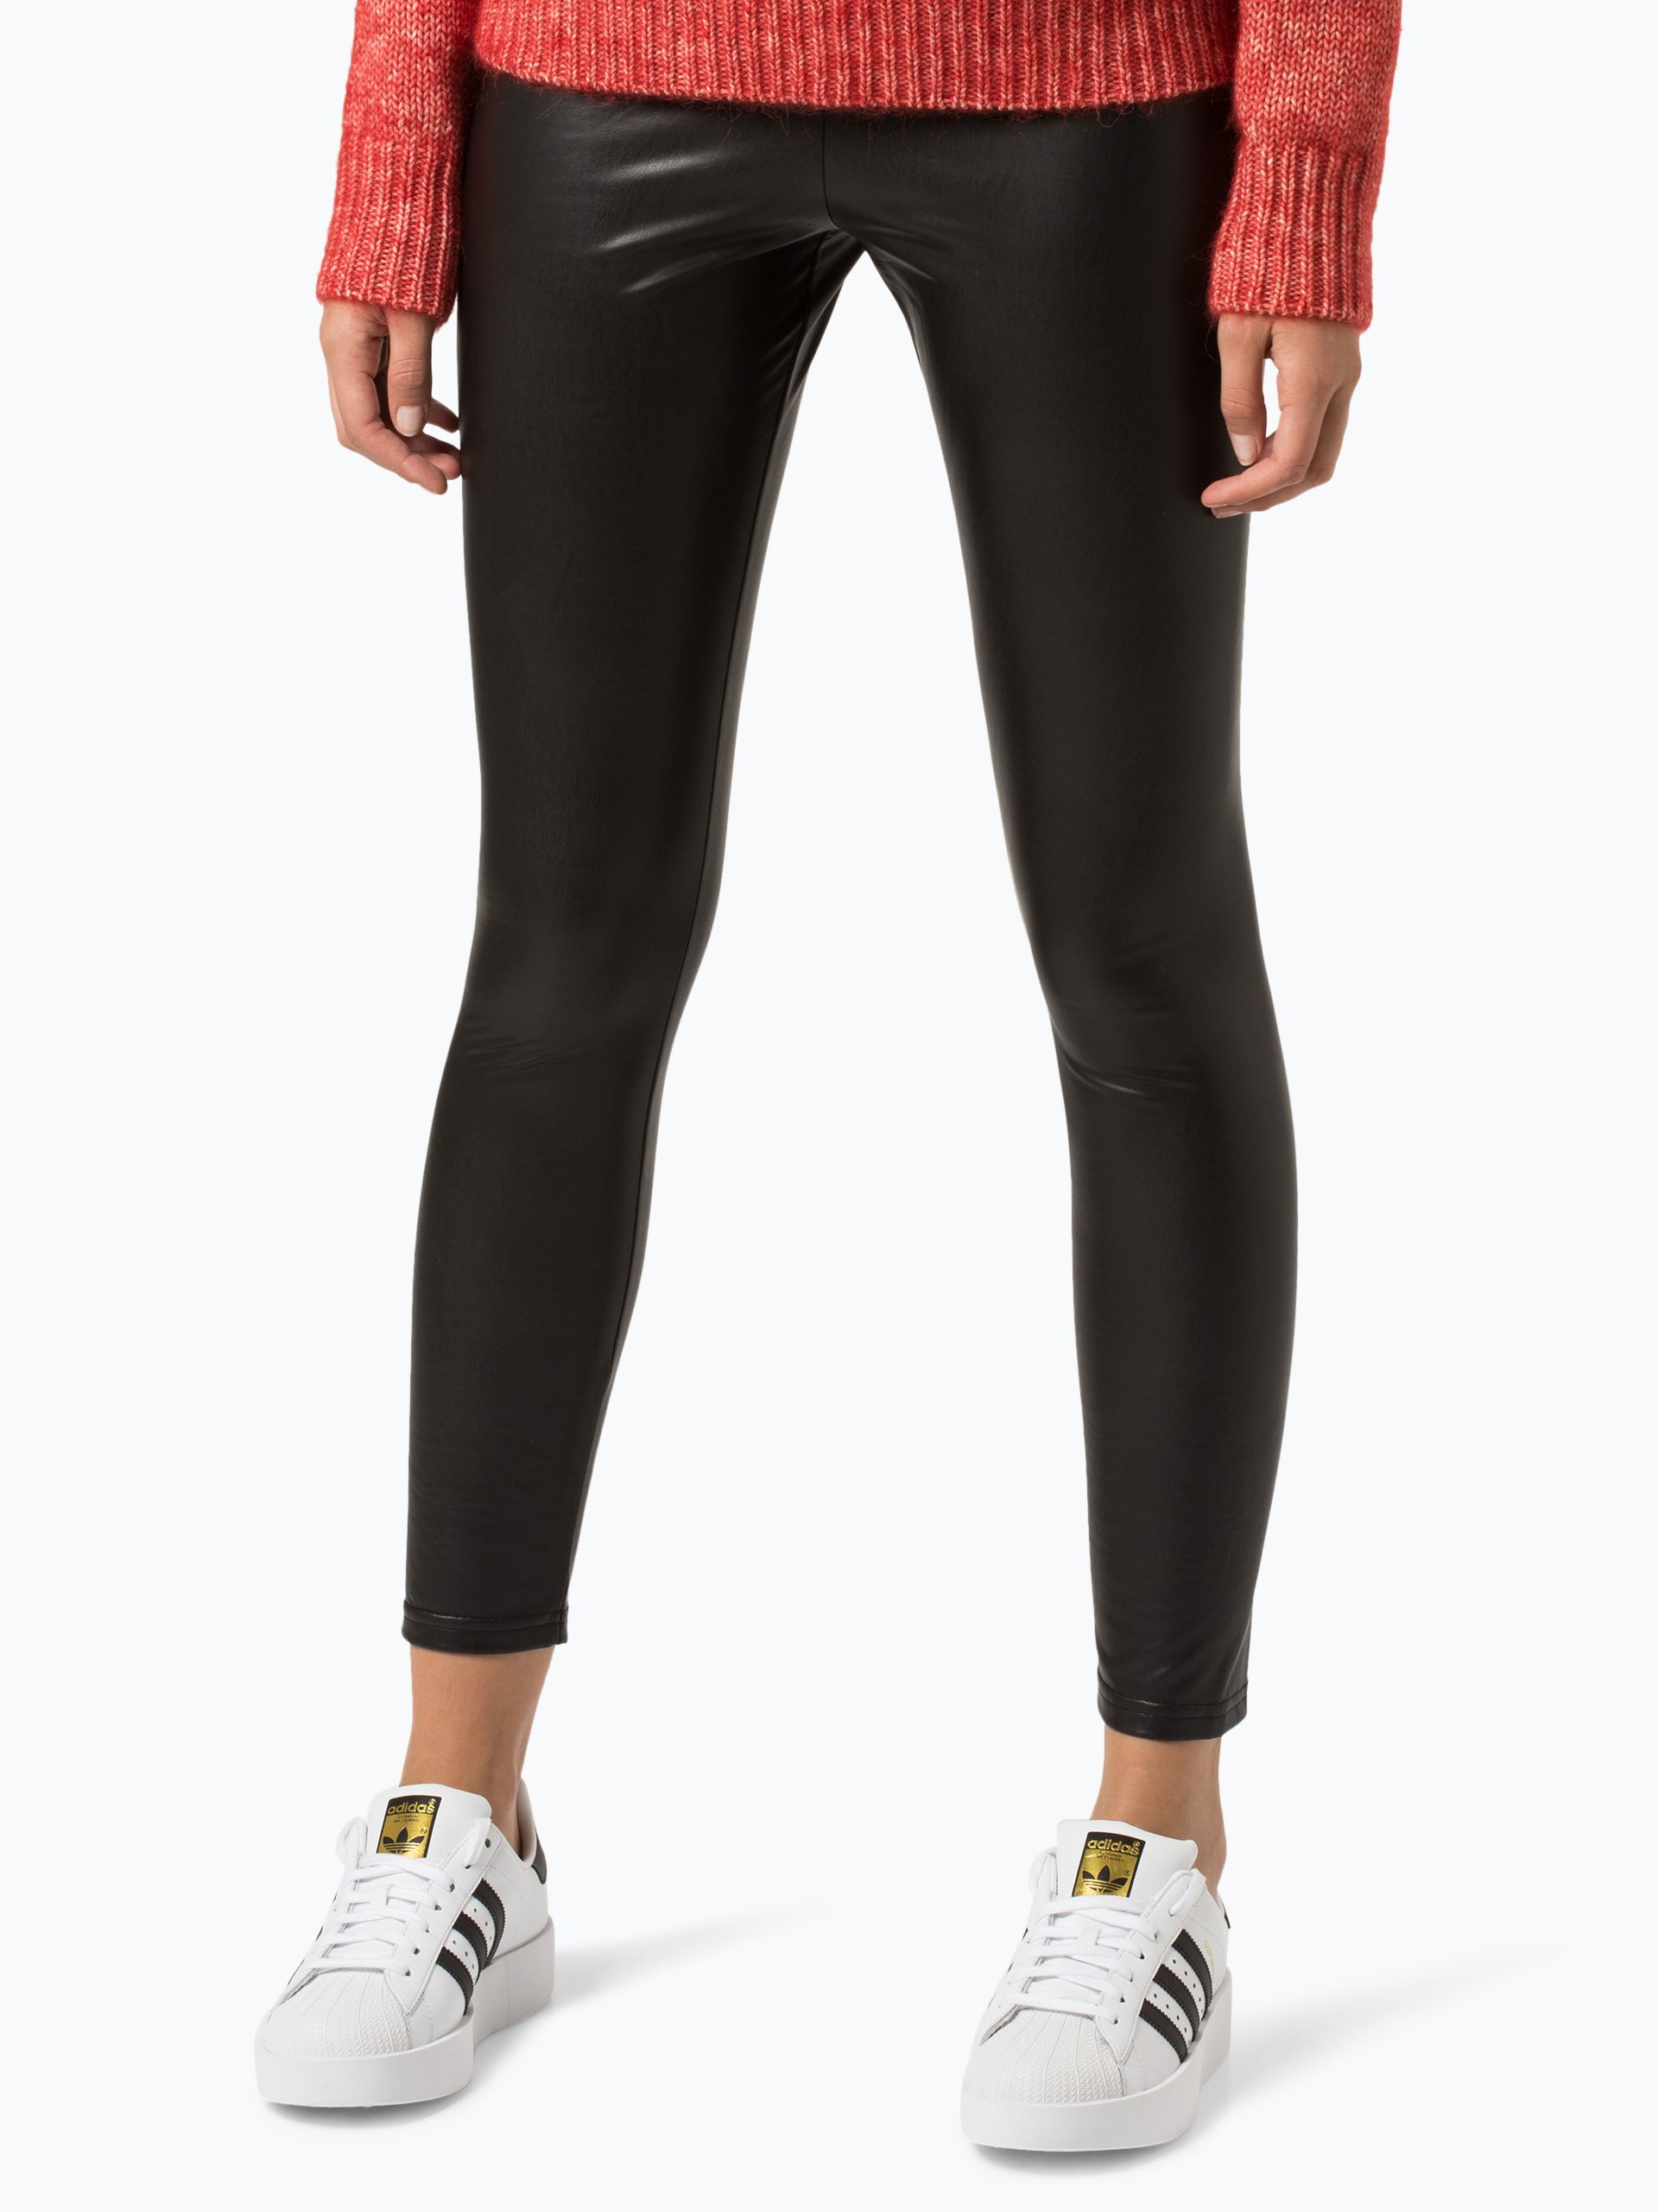 Opus Damen Leggings - Elyssa